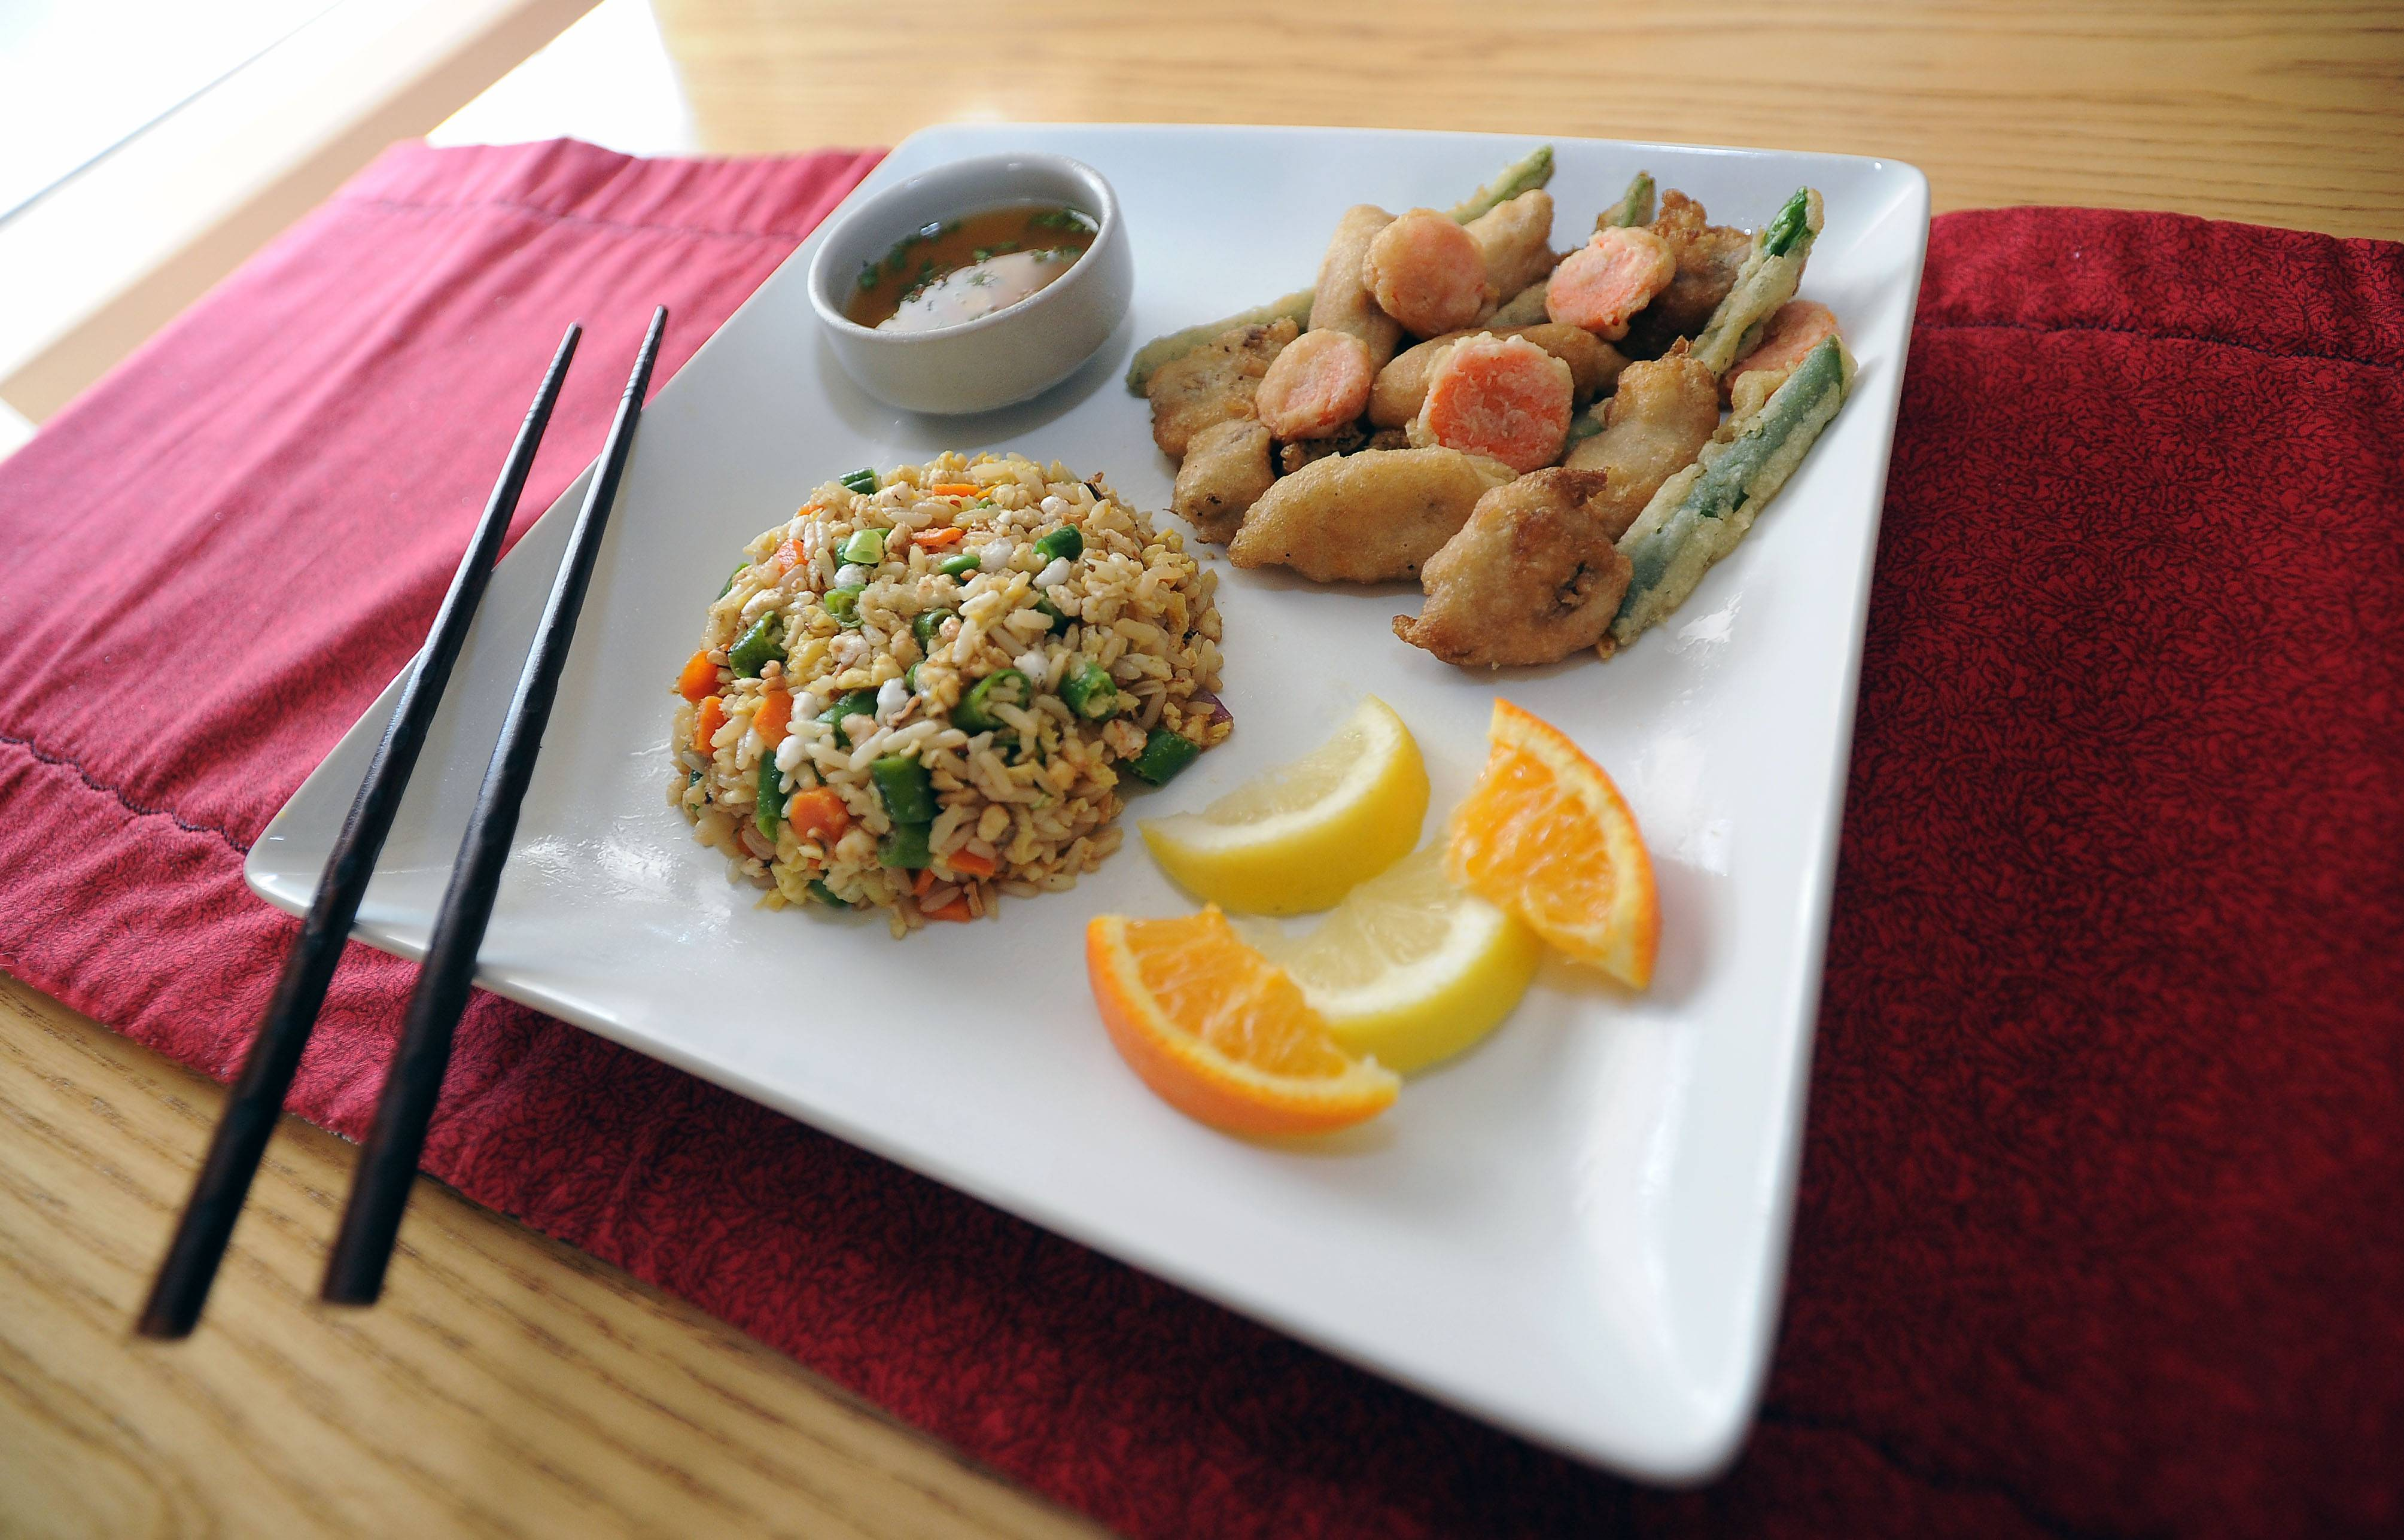 Cook of the Week Challenge contestant Chuck Federici created Tempura Mackerel with Fried Rice and Orange Ginger Dipping Sauce.